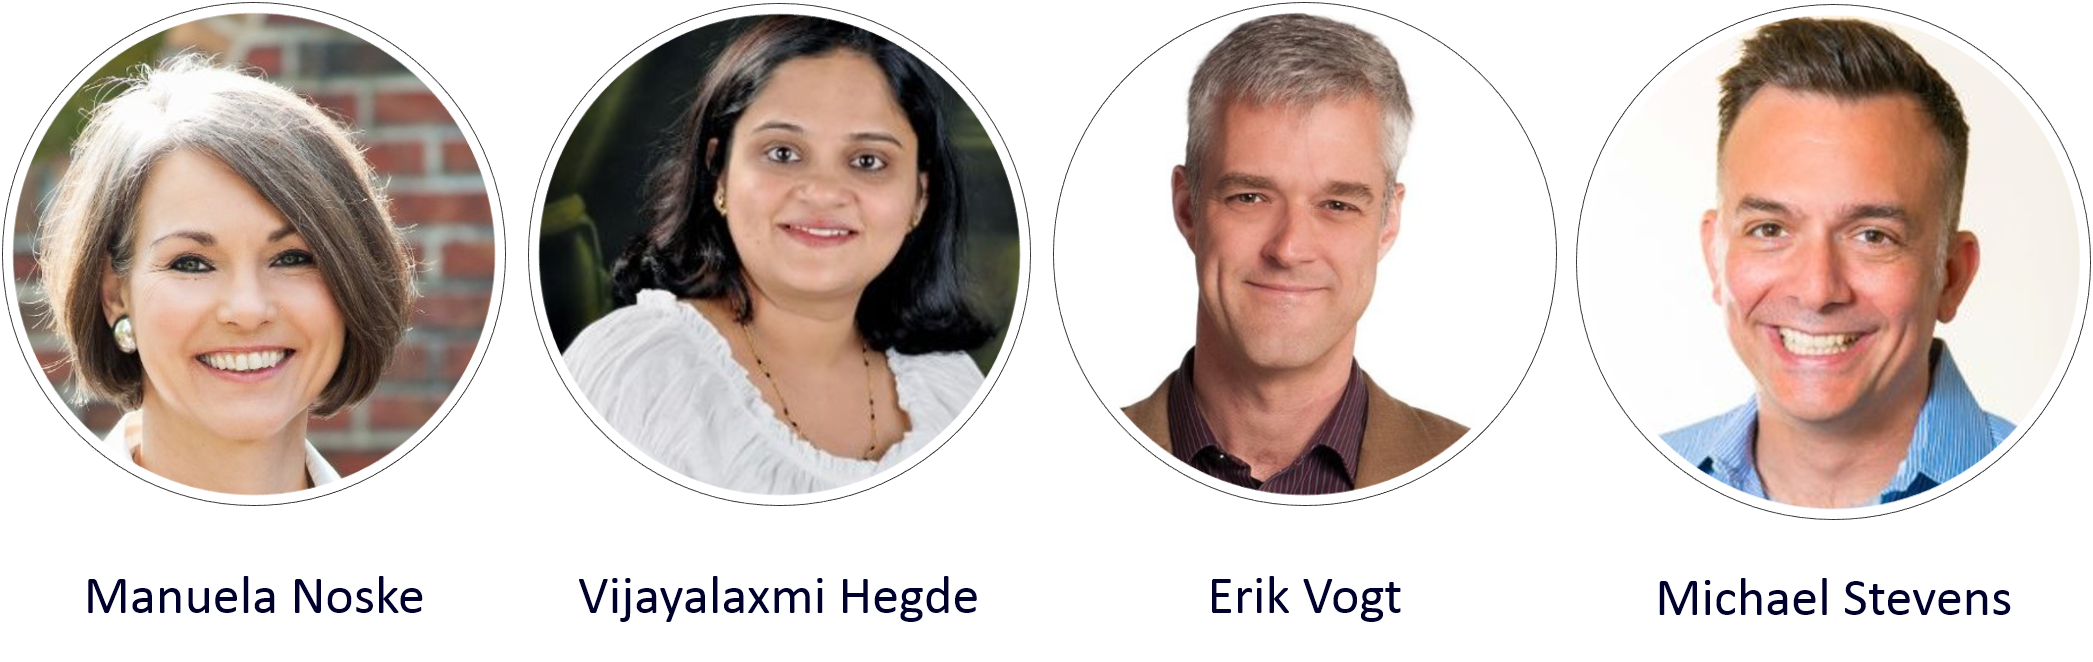 Africa and India: How to Reach the Next Billion Customers? [Presenters]